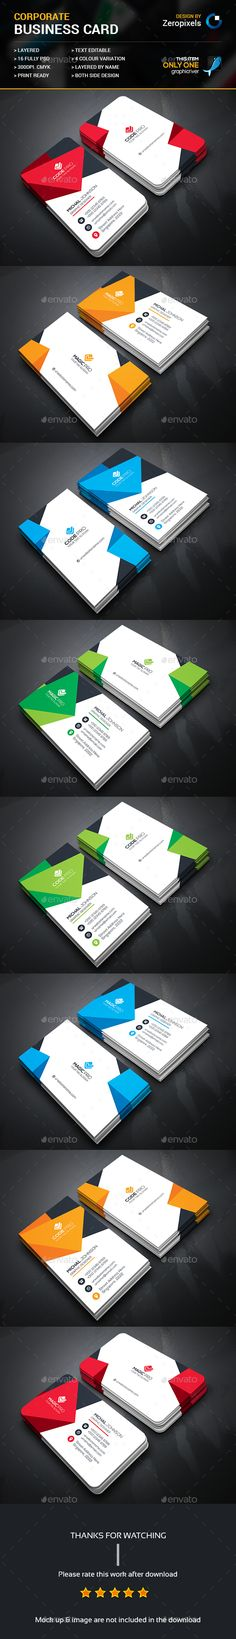 Business Card Design bundle - Business Cards Template PSD. Download here: http://graphicriver.net/item/business-card-bundle/16759308?s_rank=303&ref=yinkira